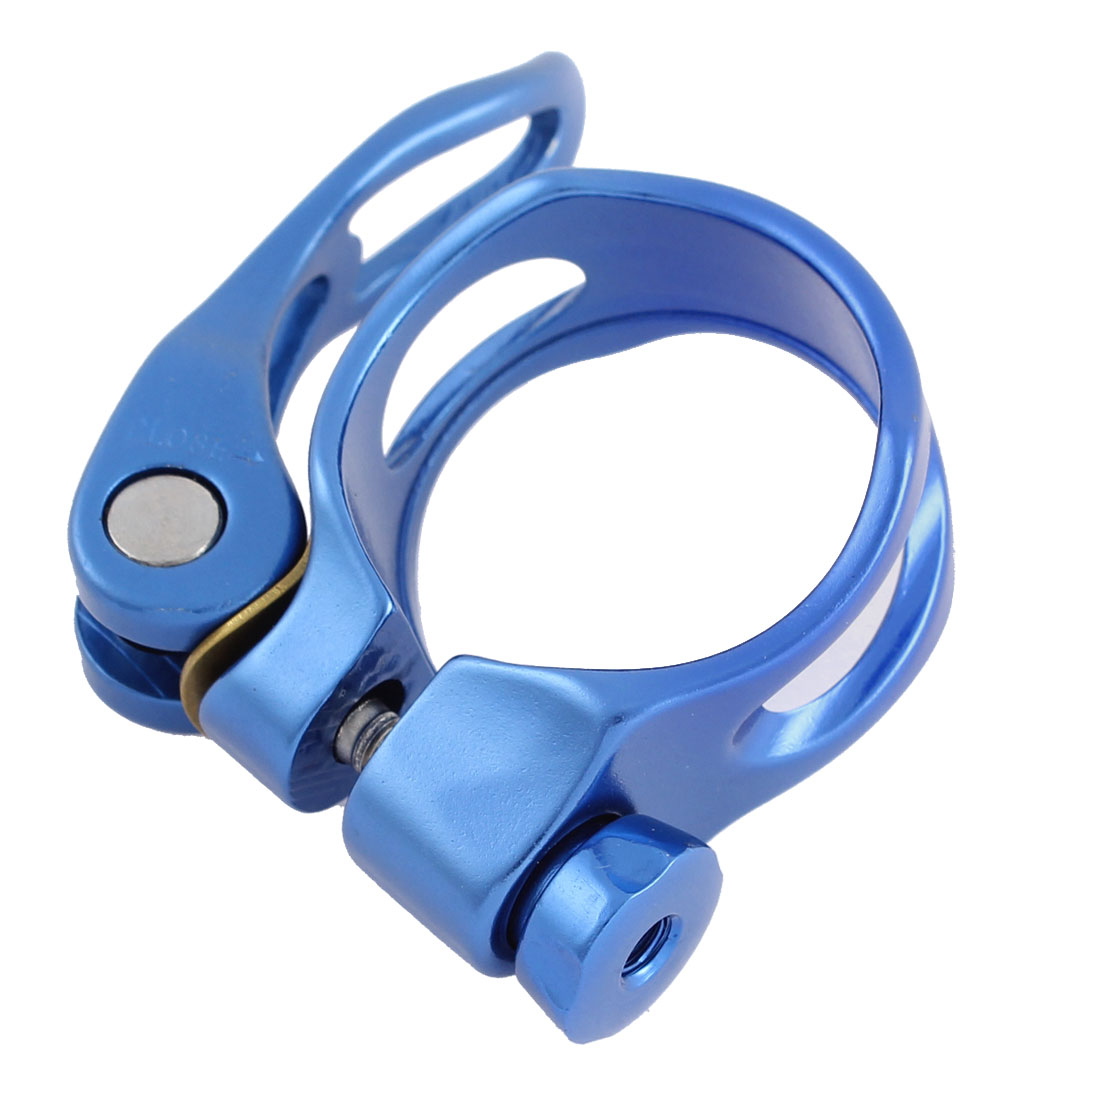 Authorized by LF 34.9mm Quick Release Mountain Bike Bicycle Seat Post Clamp Blue